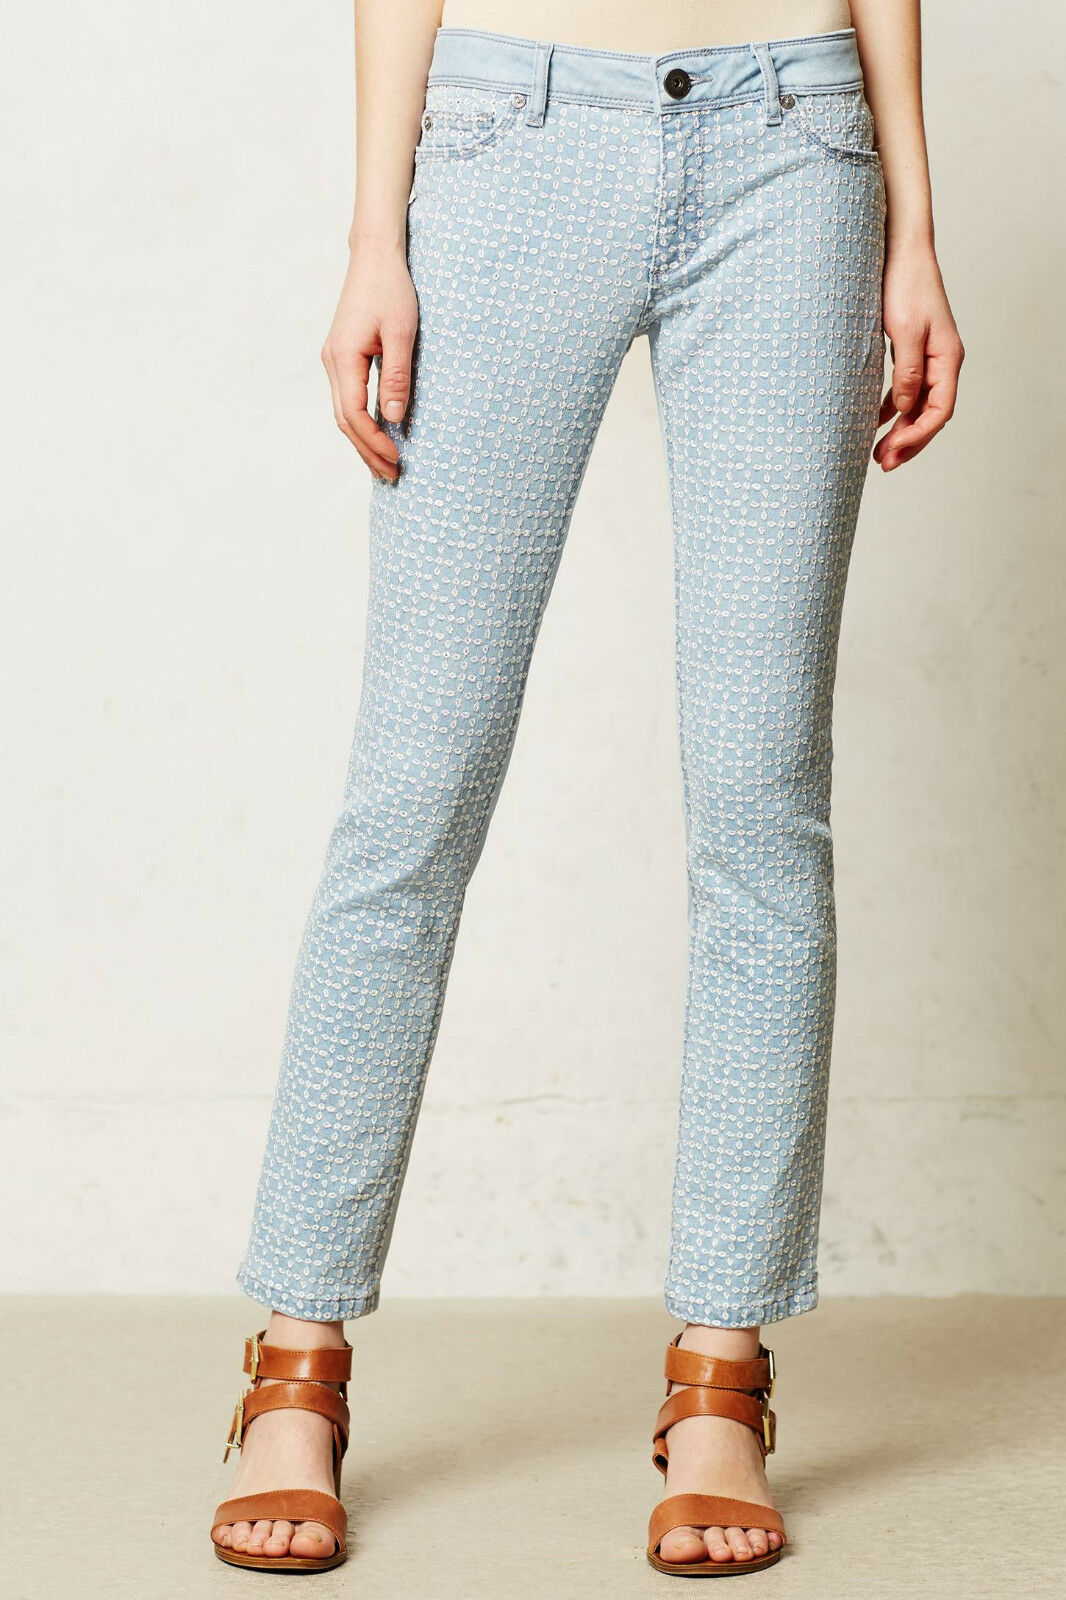 DL1961 Angel Eyelet Ankle Jeans Pants Größe 27 Bliss Farbe NW ANTHROPOLOGIE Tag